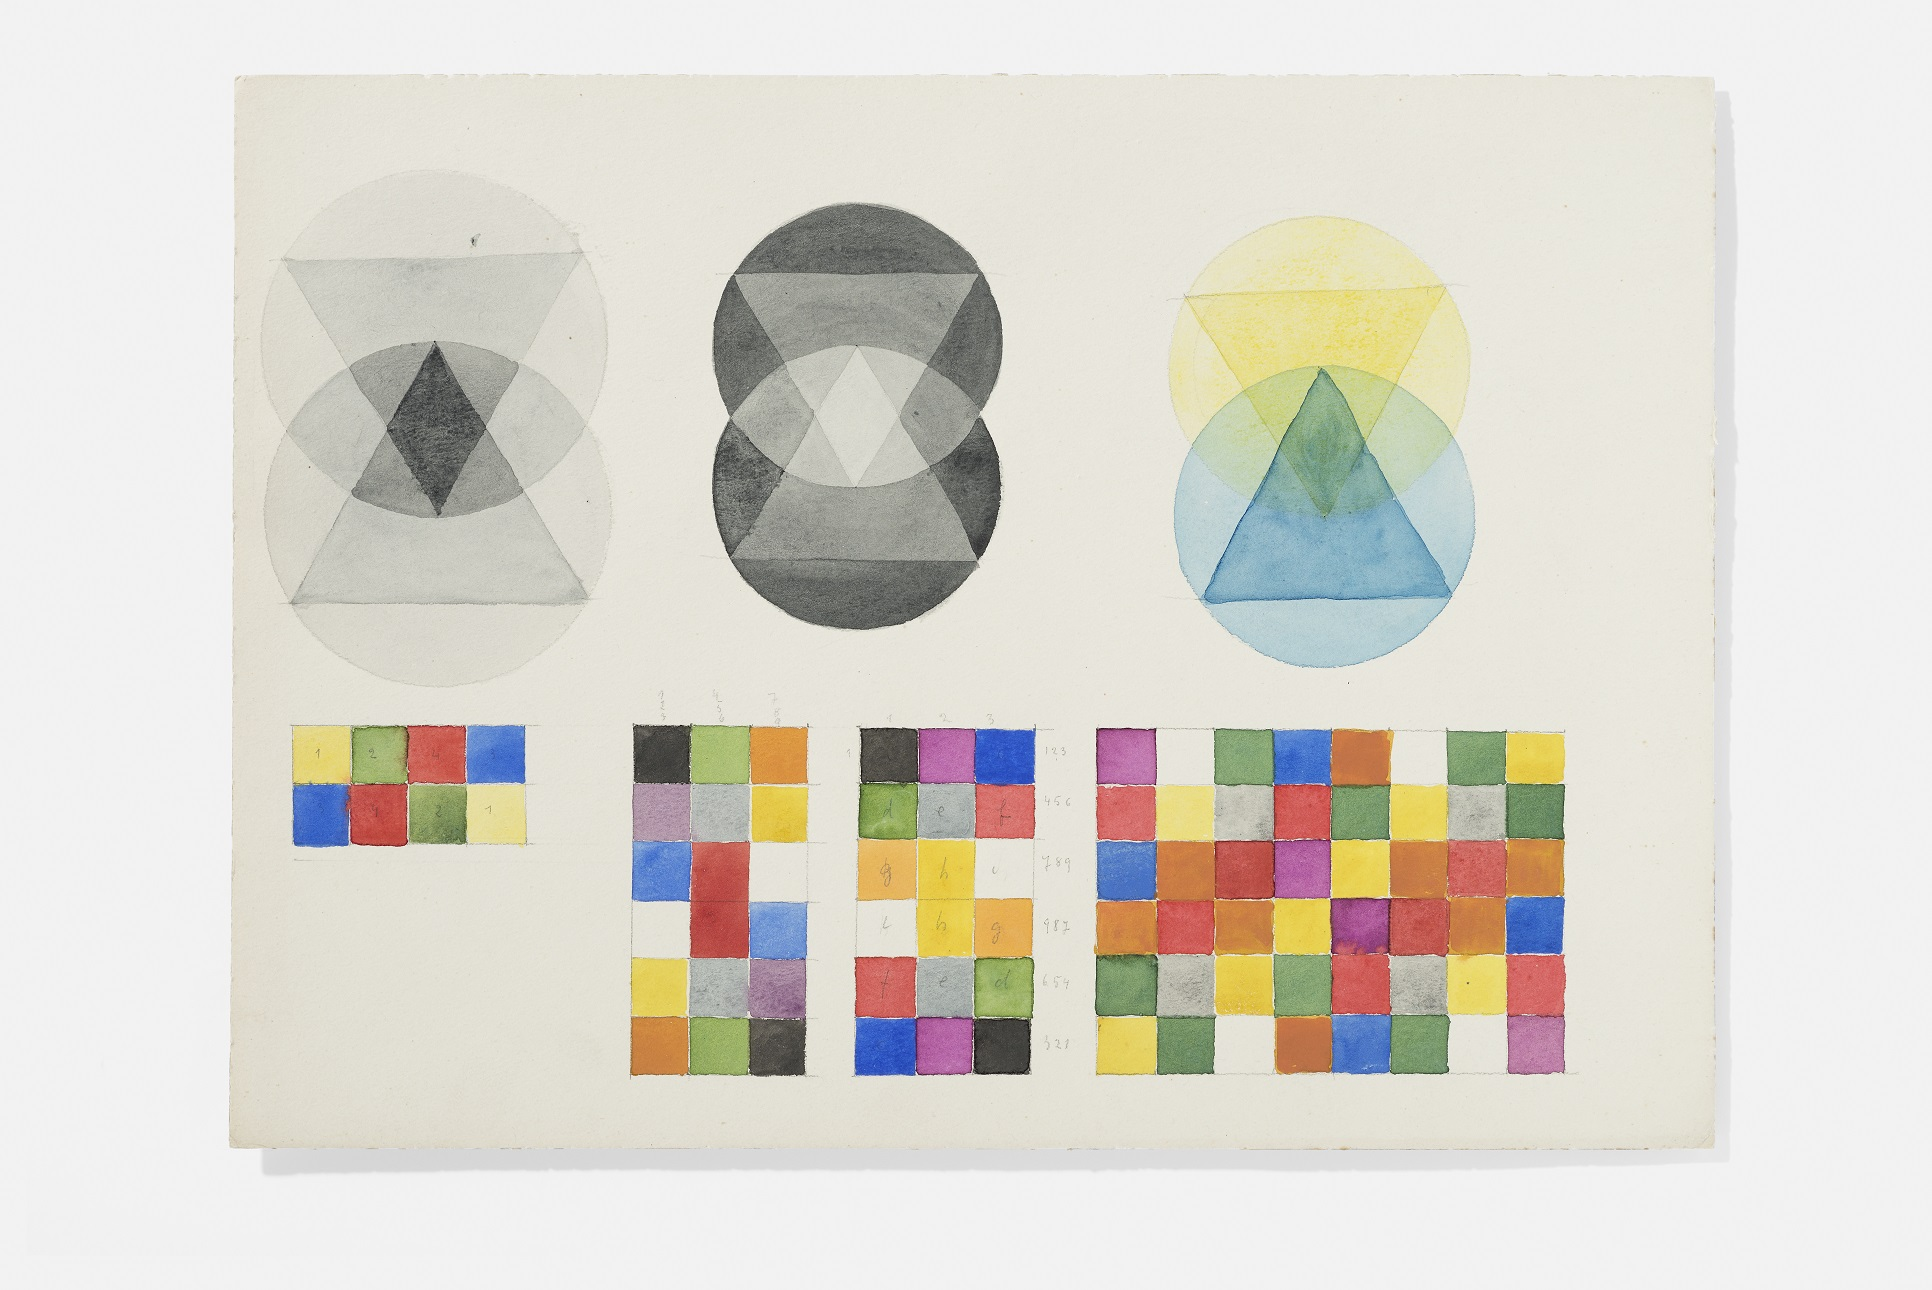 "Marianne Ahlfeld- Heymann (attributed), exercise from the class""pictorial form theory"" by Paul Klee, 1923 –24, drawings. Photo credit : A. Körner, bildhübsche Fotografie, Institut für Auslandsbeziehungen"